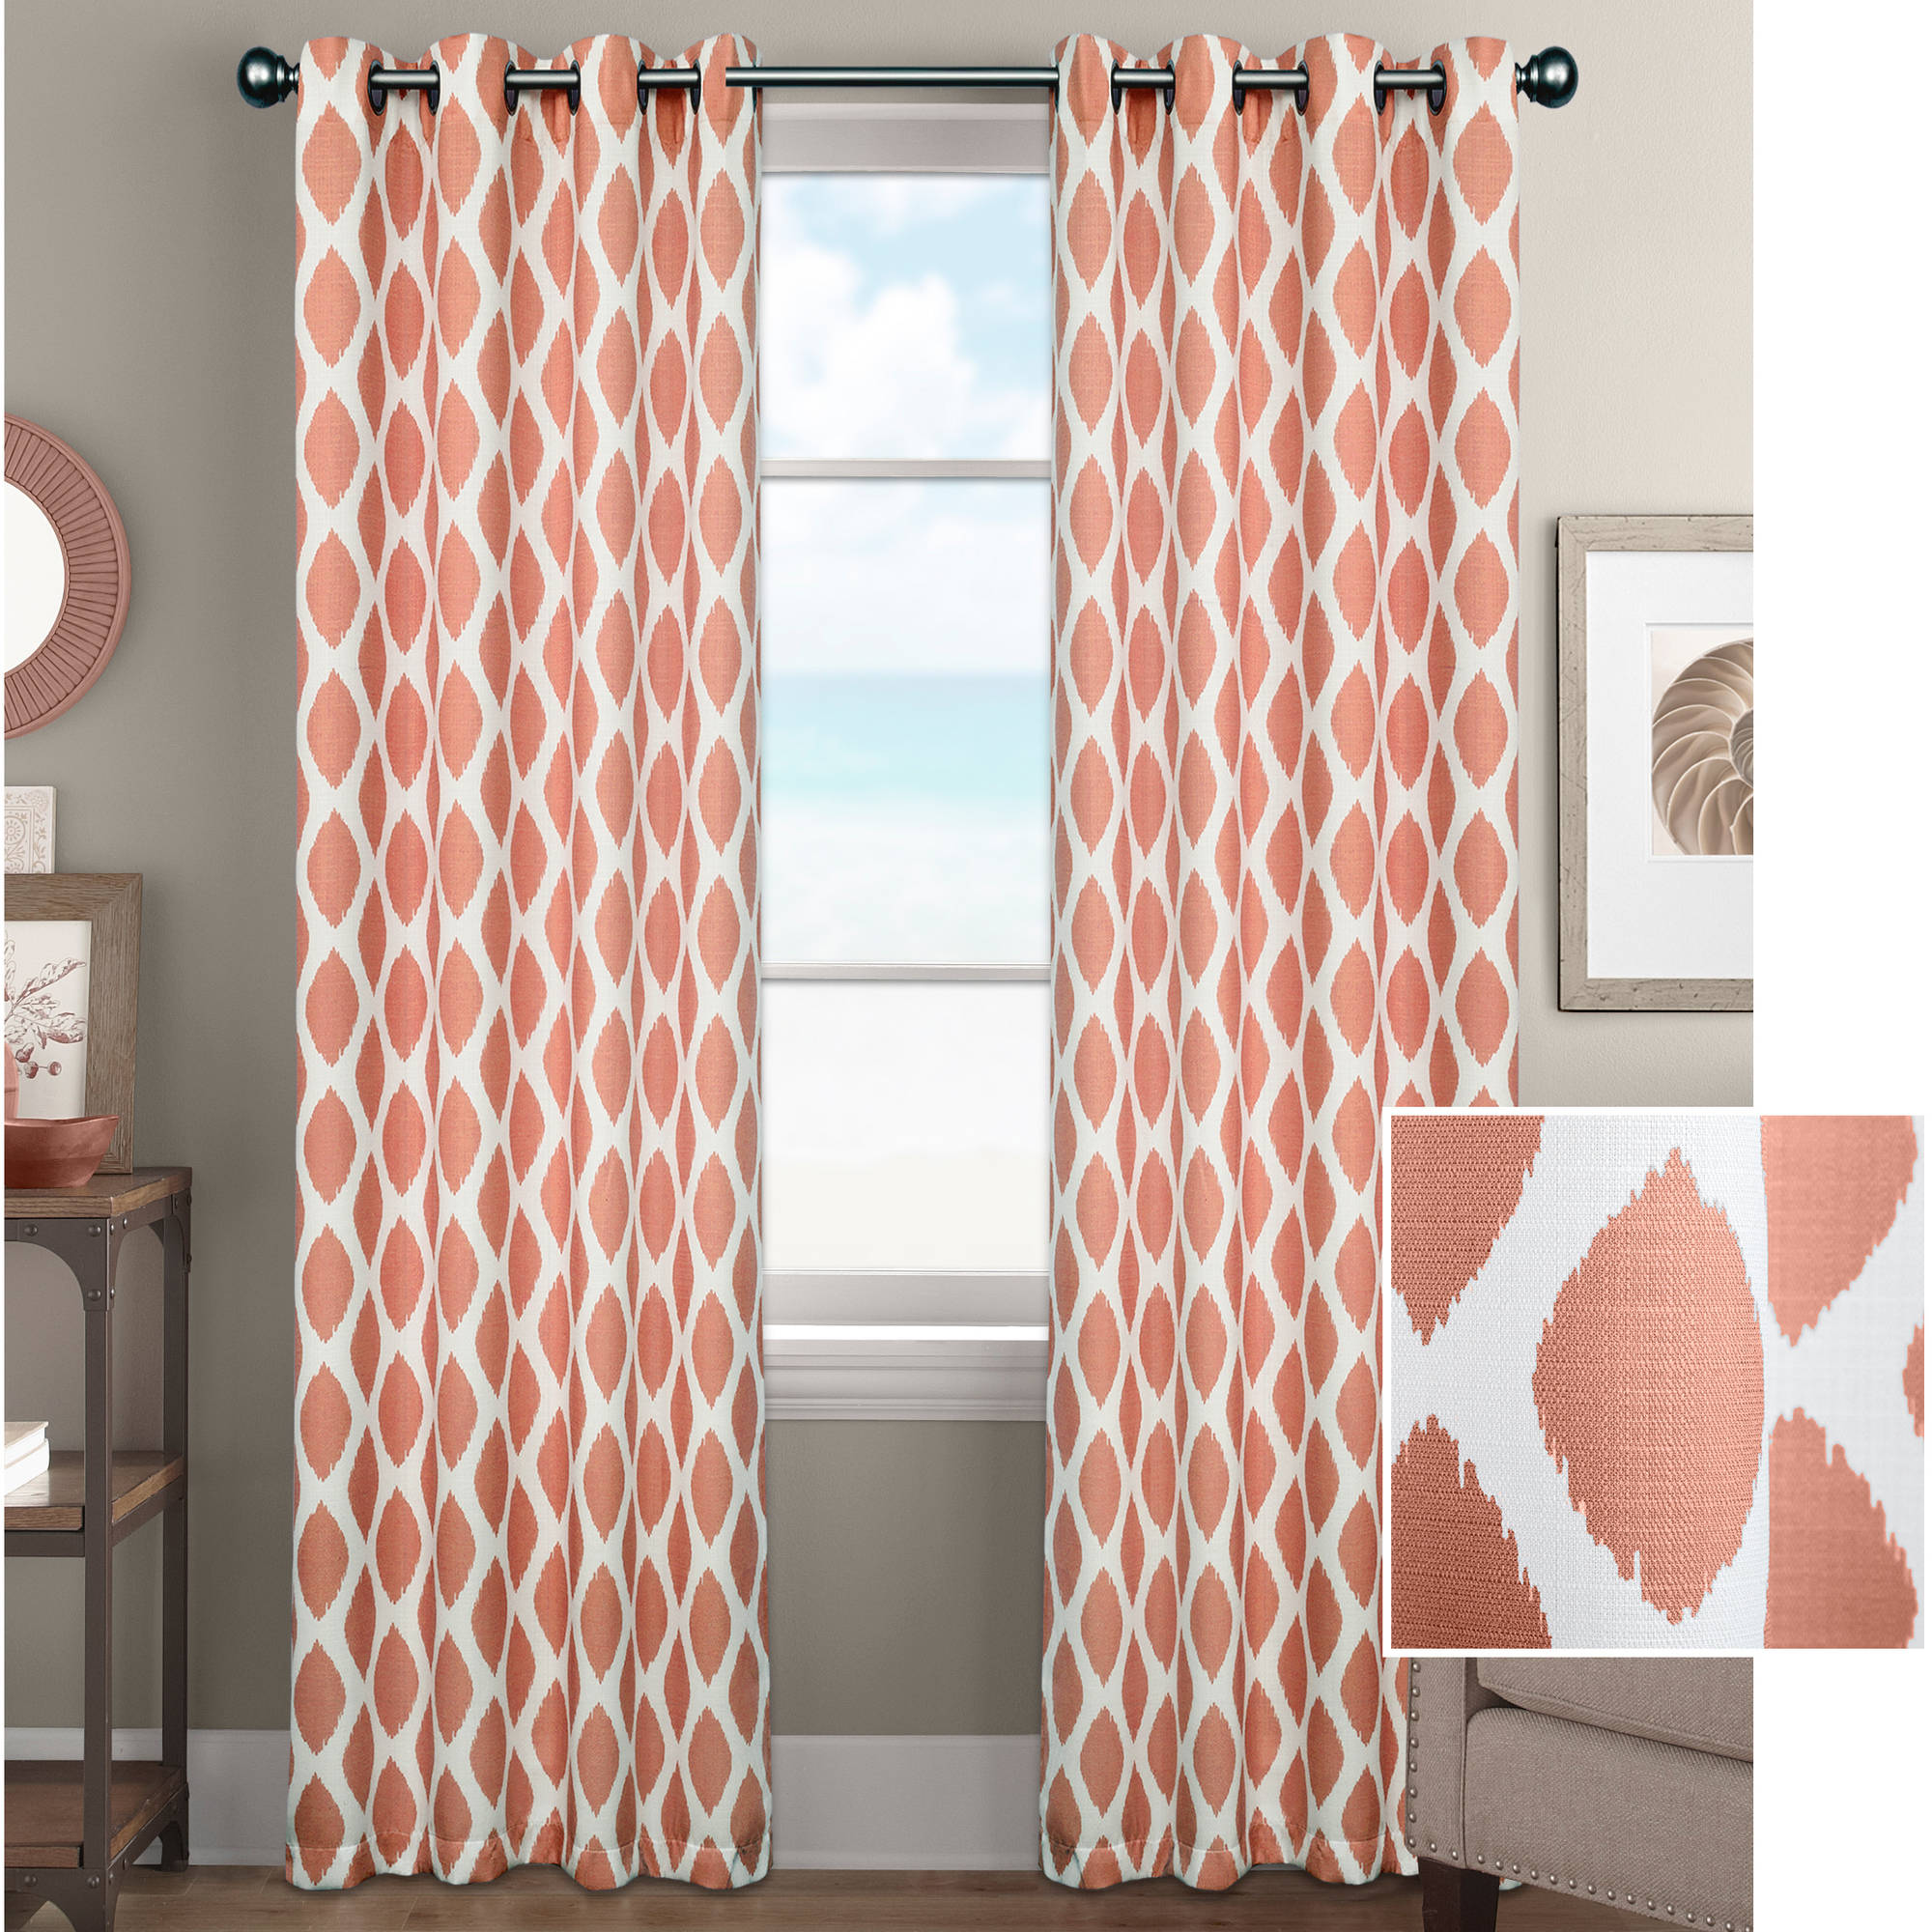 room orange curtains pin target panel aztec diamond guest threshold curtain panels